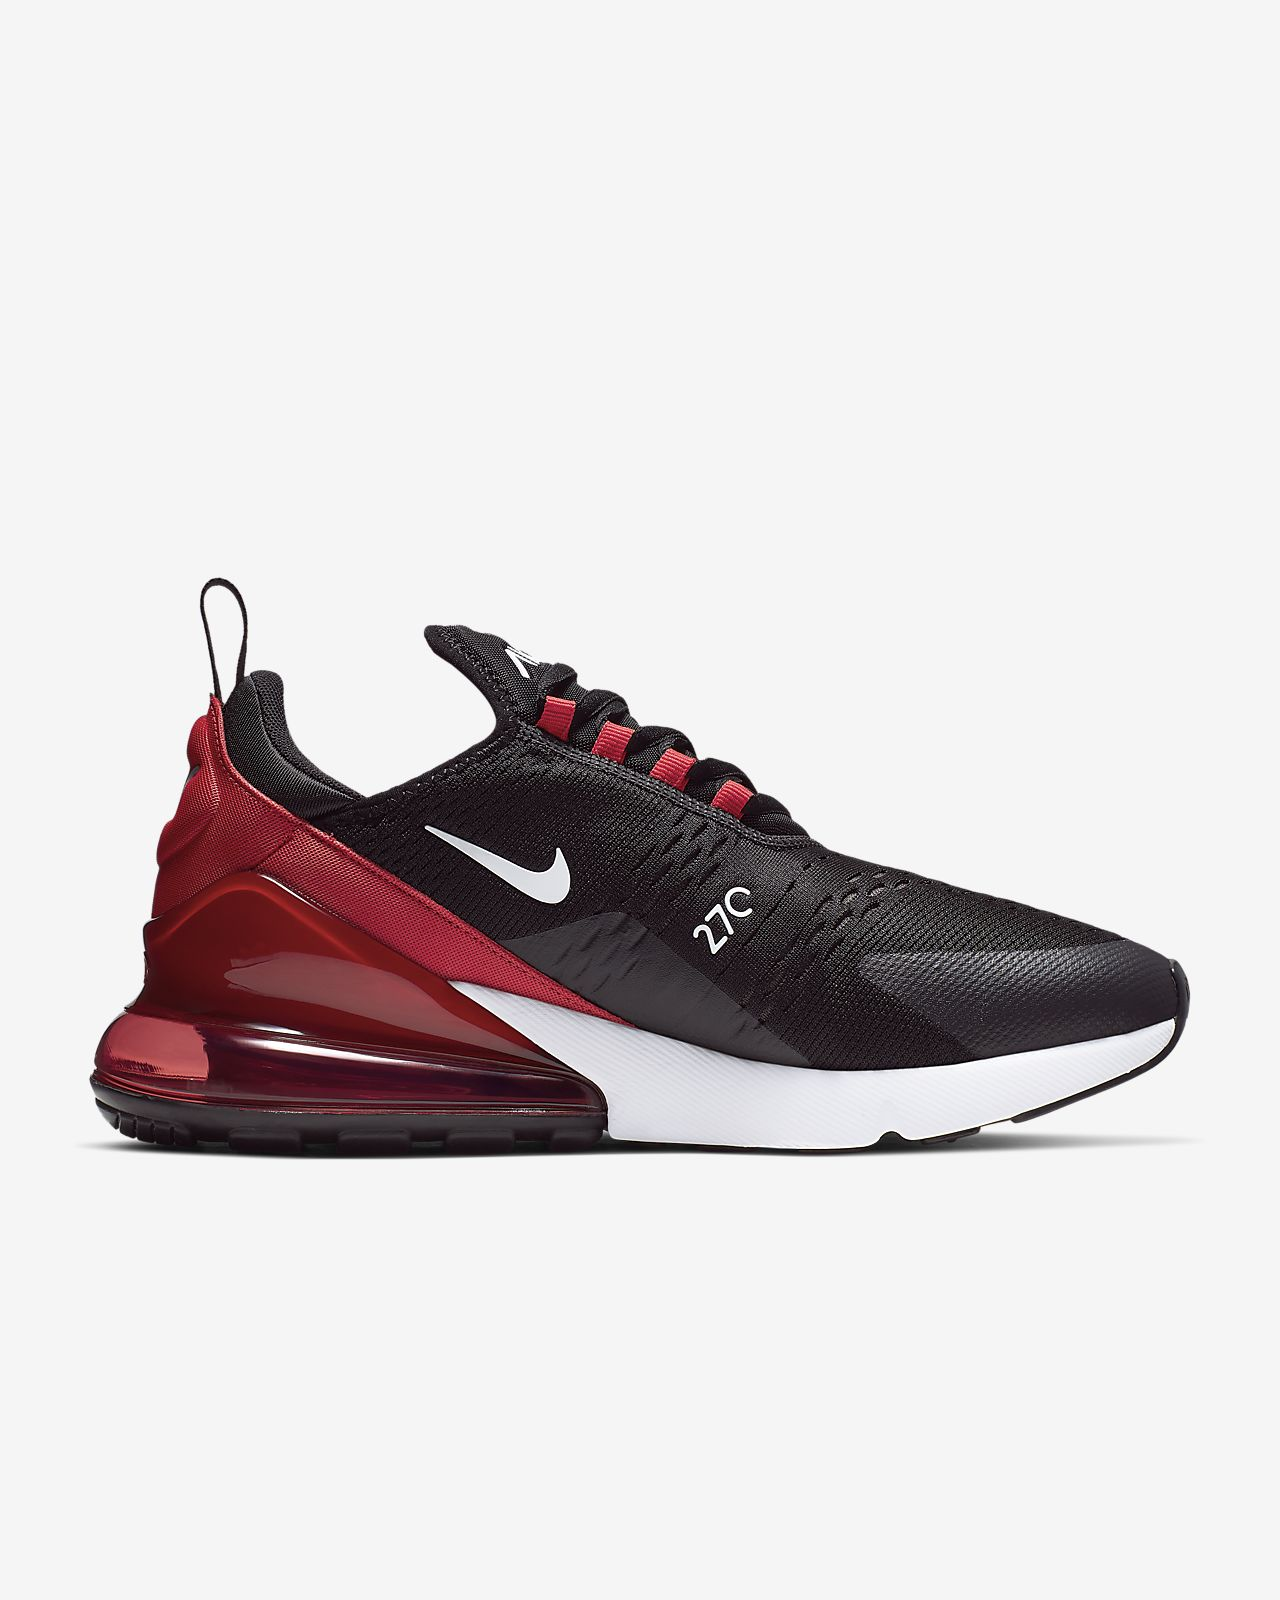 52f04311f20fd Nike Air Max 270 Men s Shoe. Nike.com GB